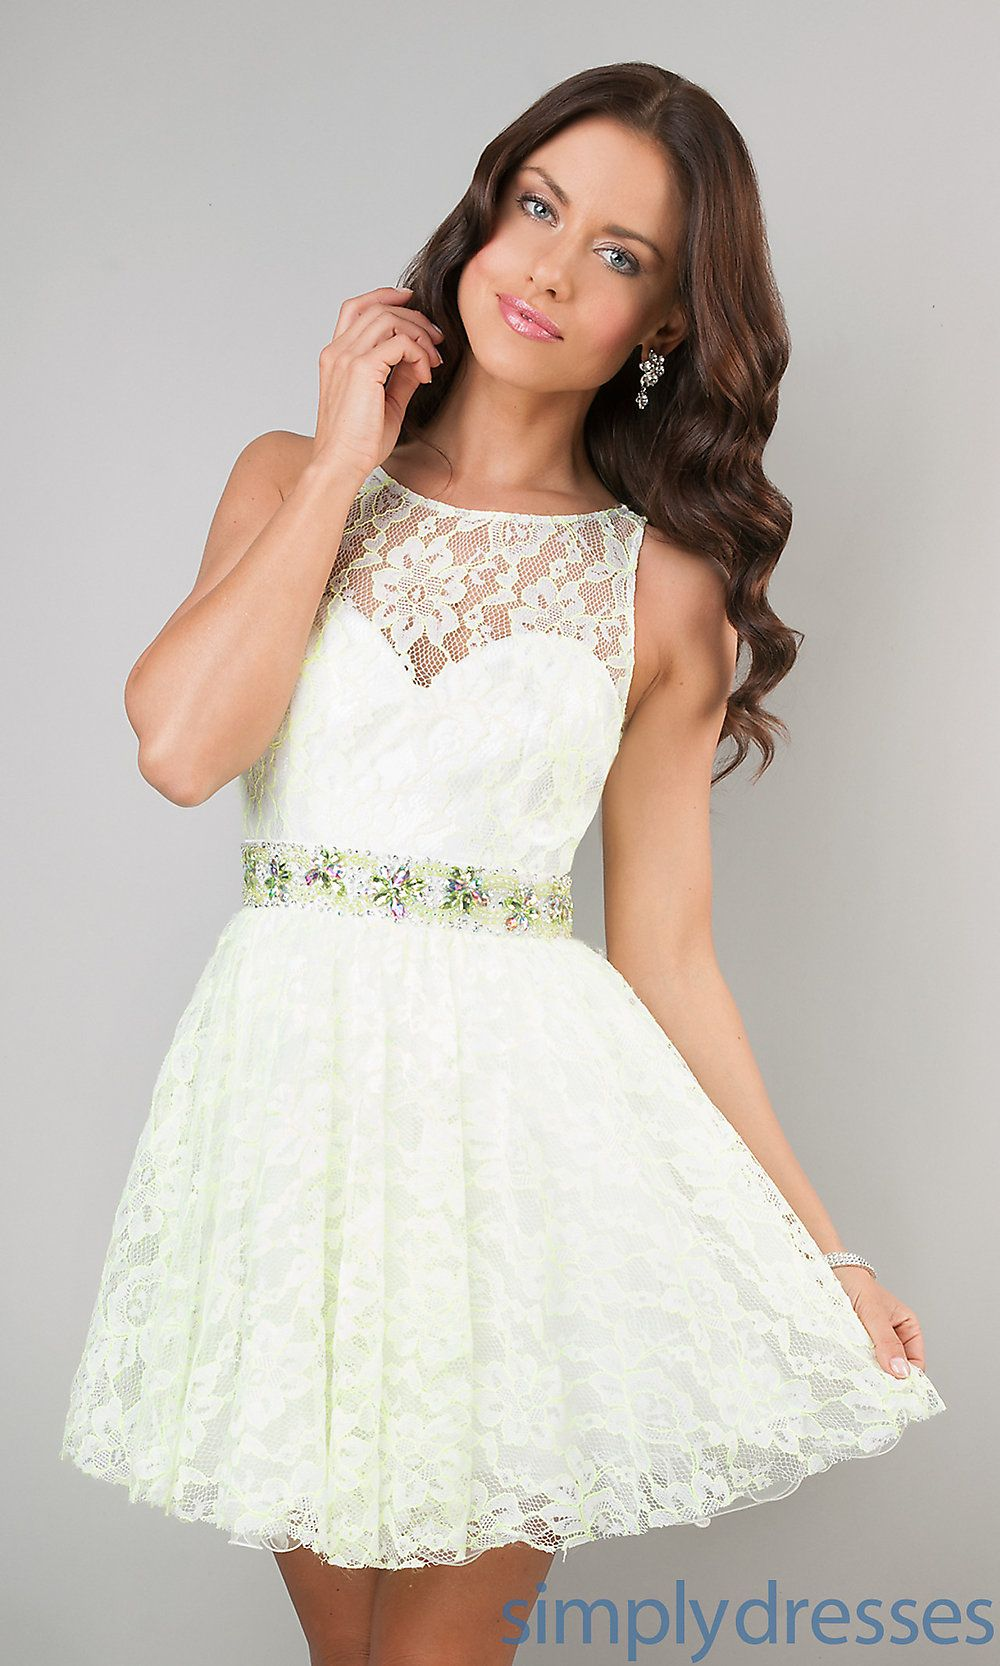 View Dress Detail: DJ-8  Teenage girls dresses, White lace